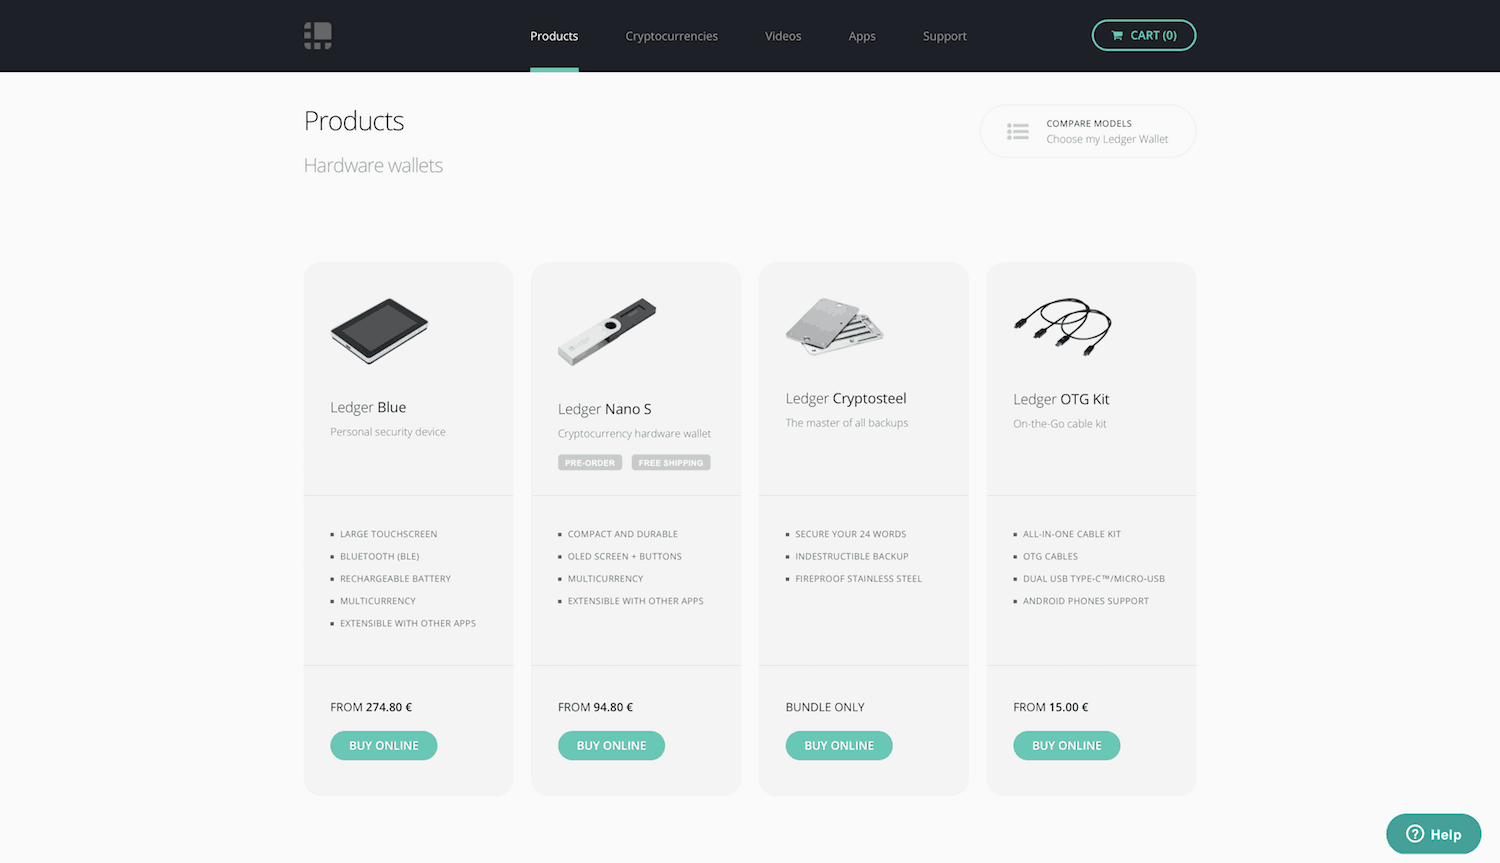 Ledger products screenshot